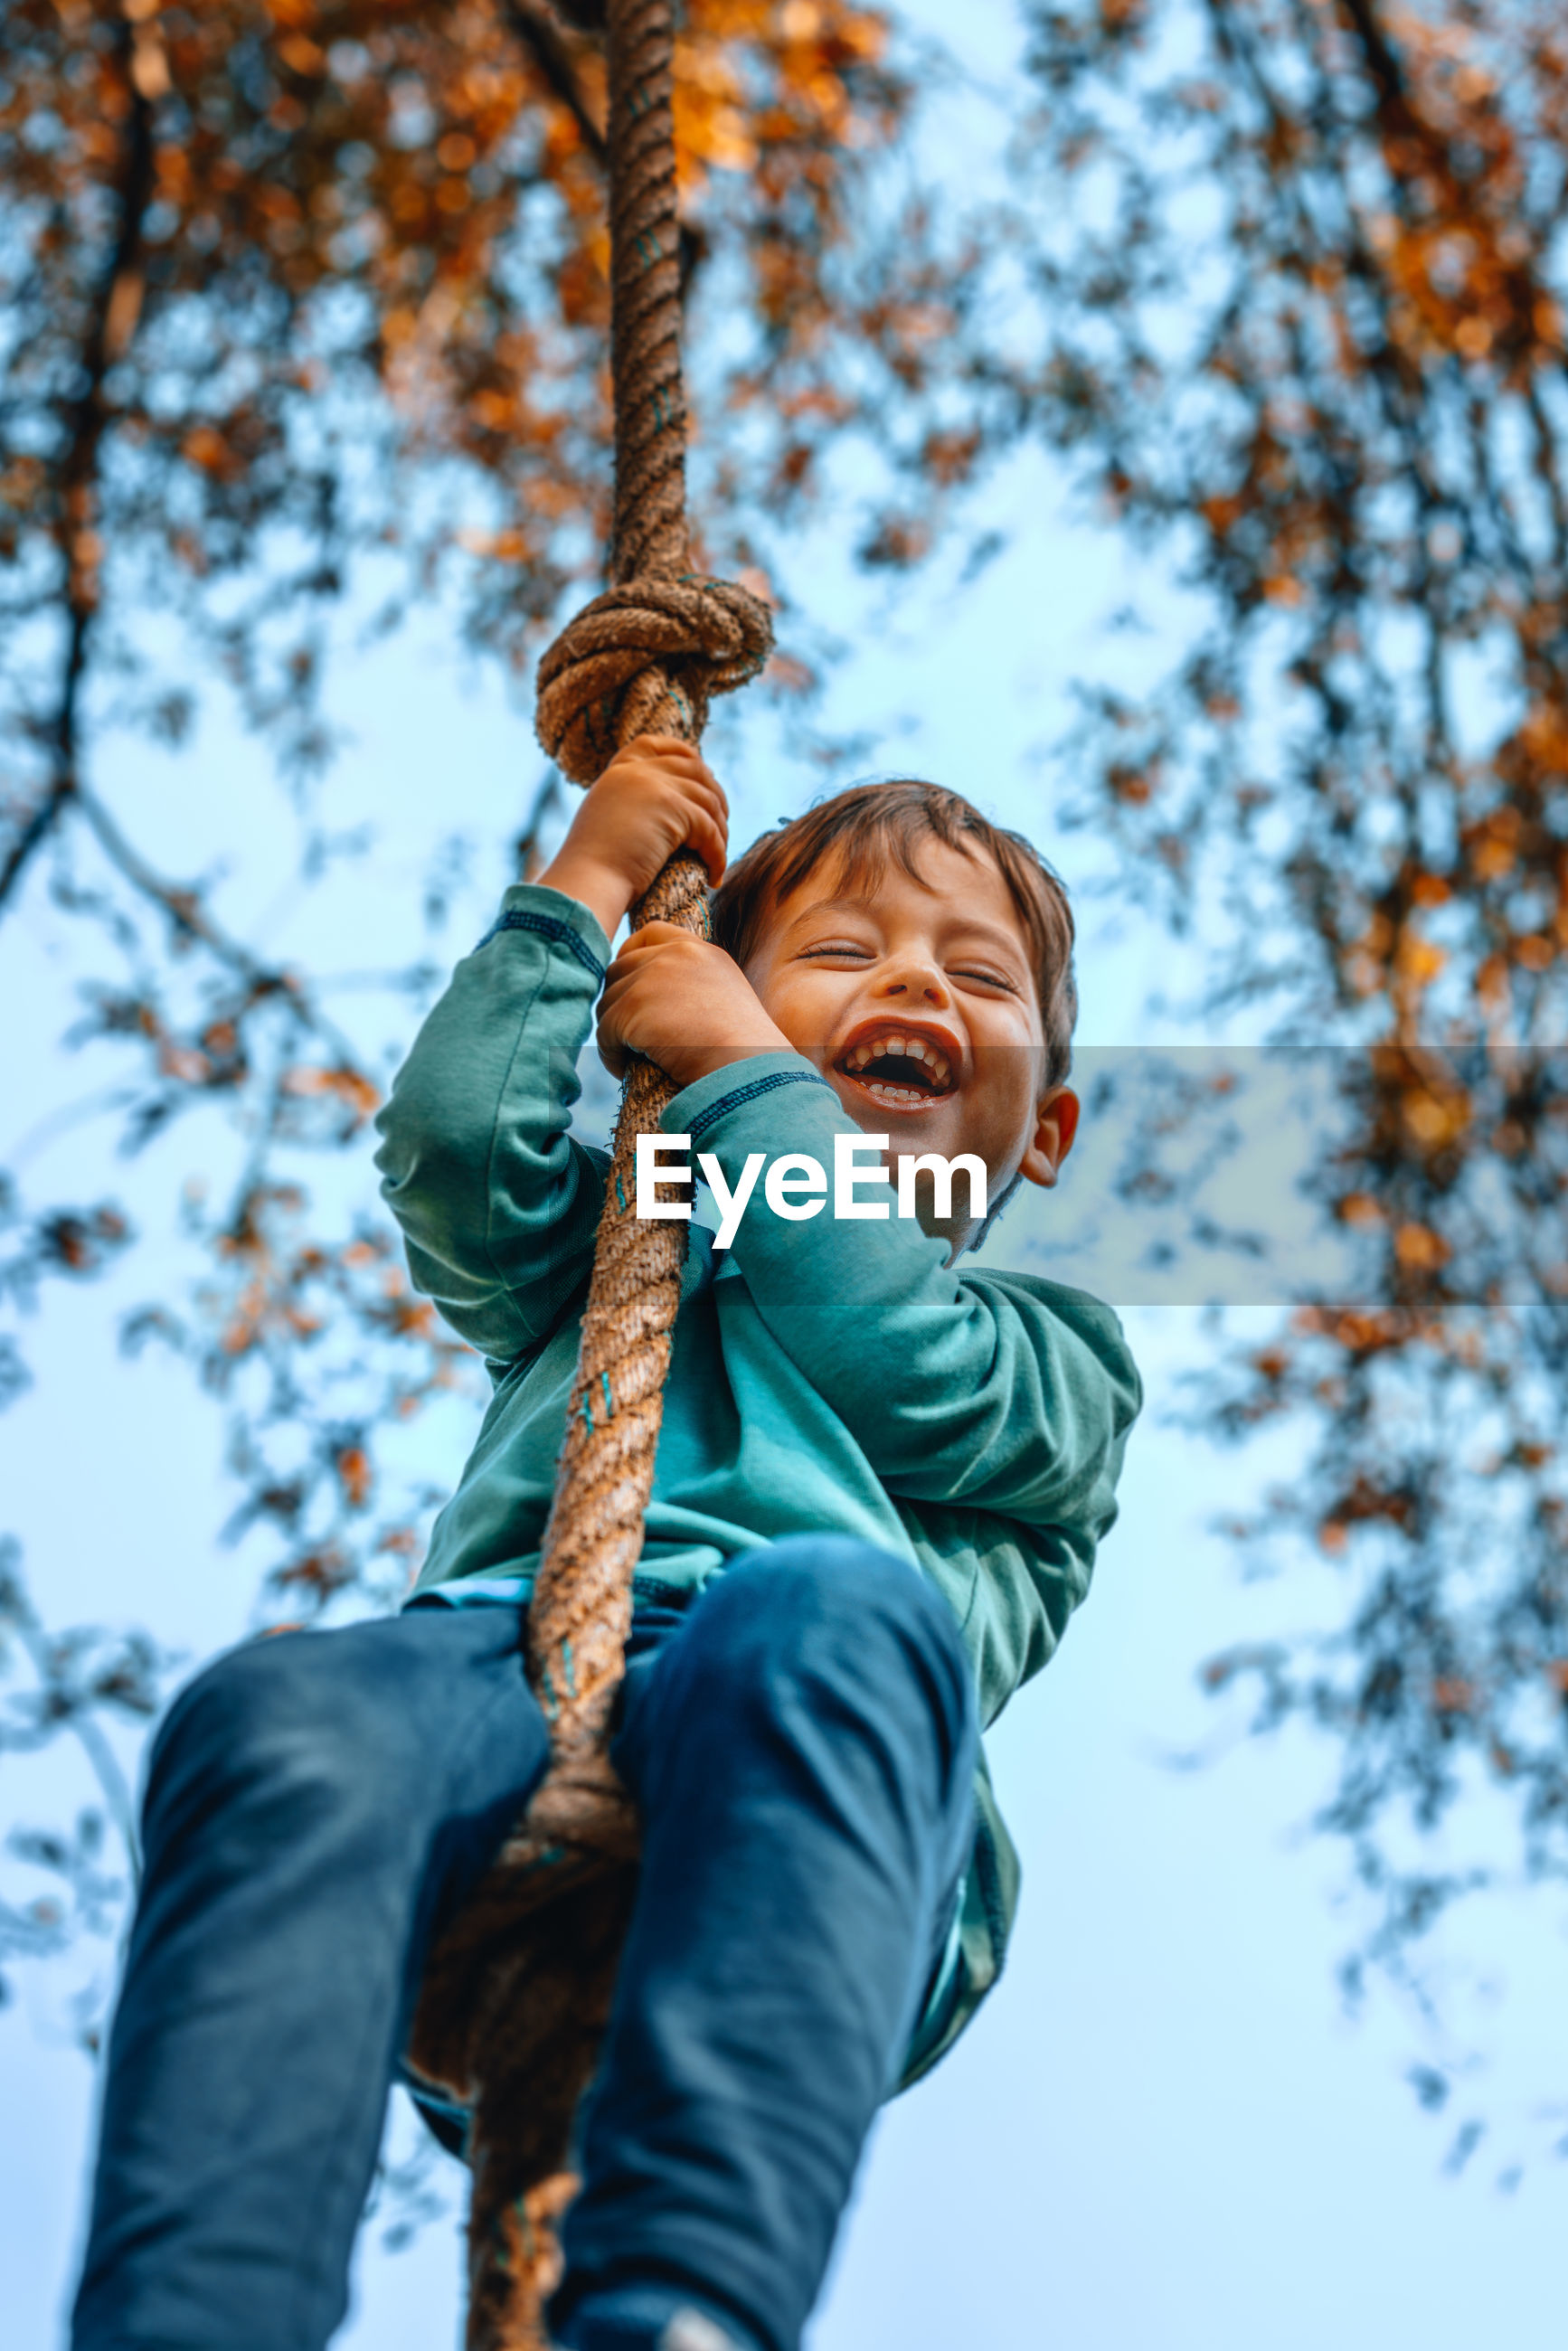 Low angle view of boy swinging against trees